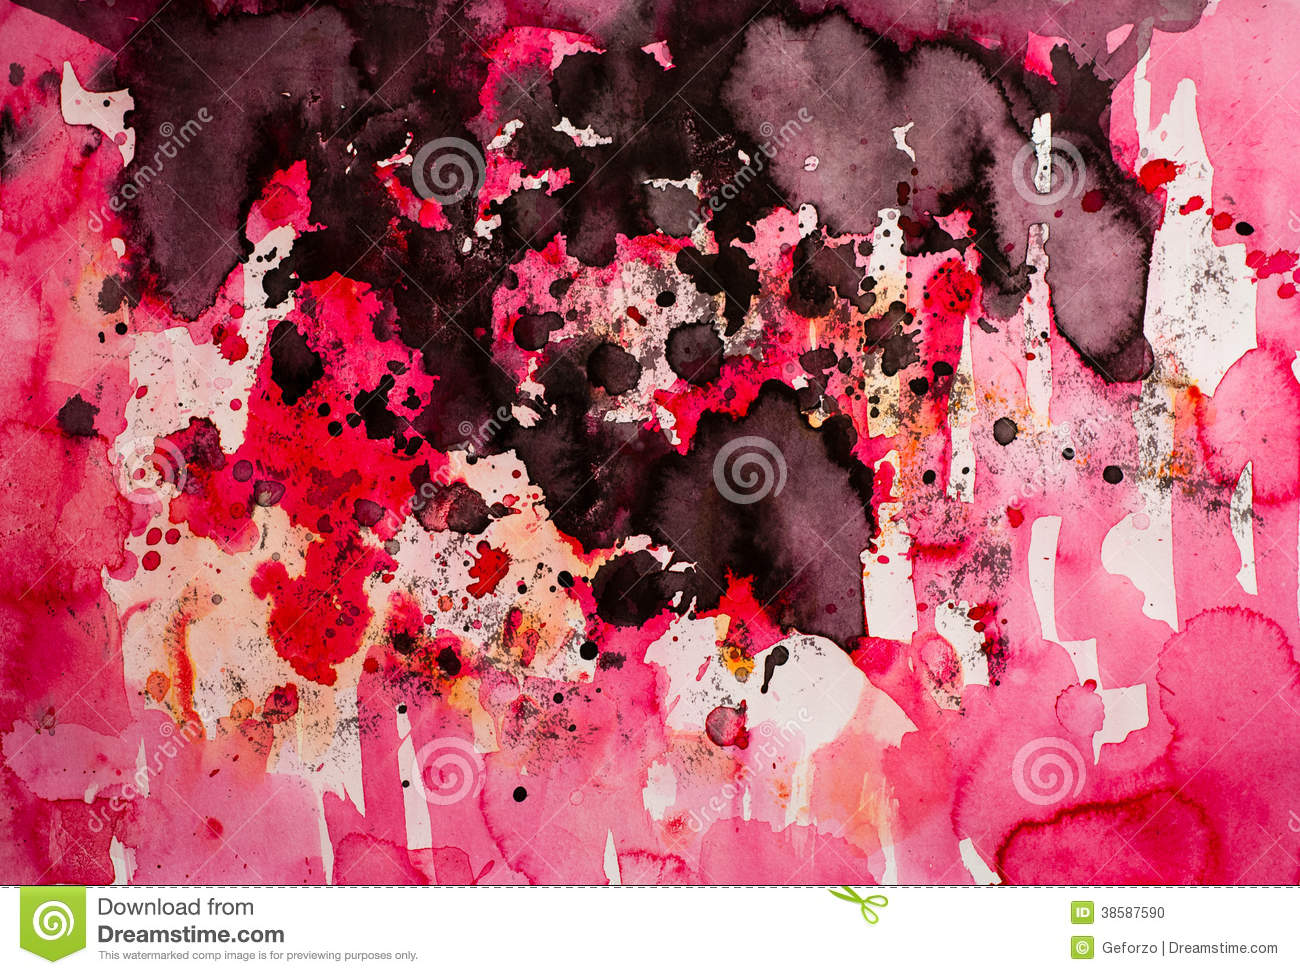 Abstract red drip painting